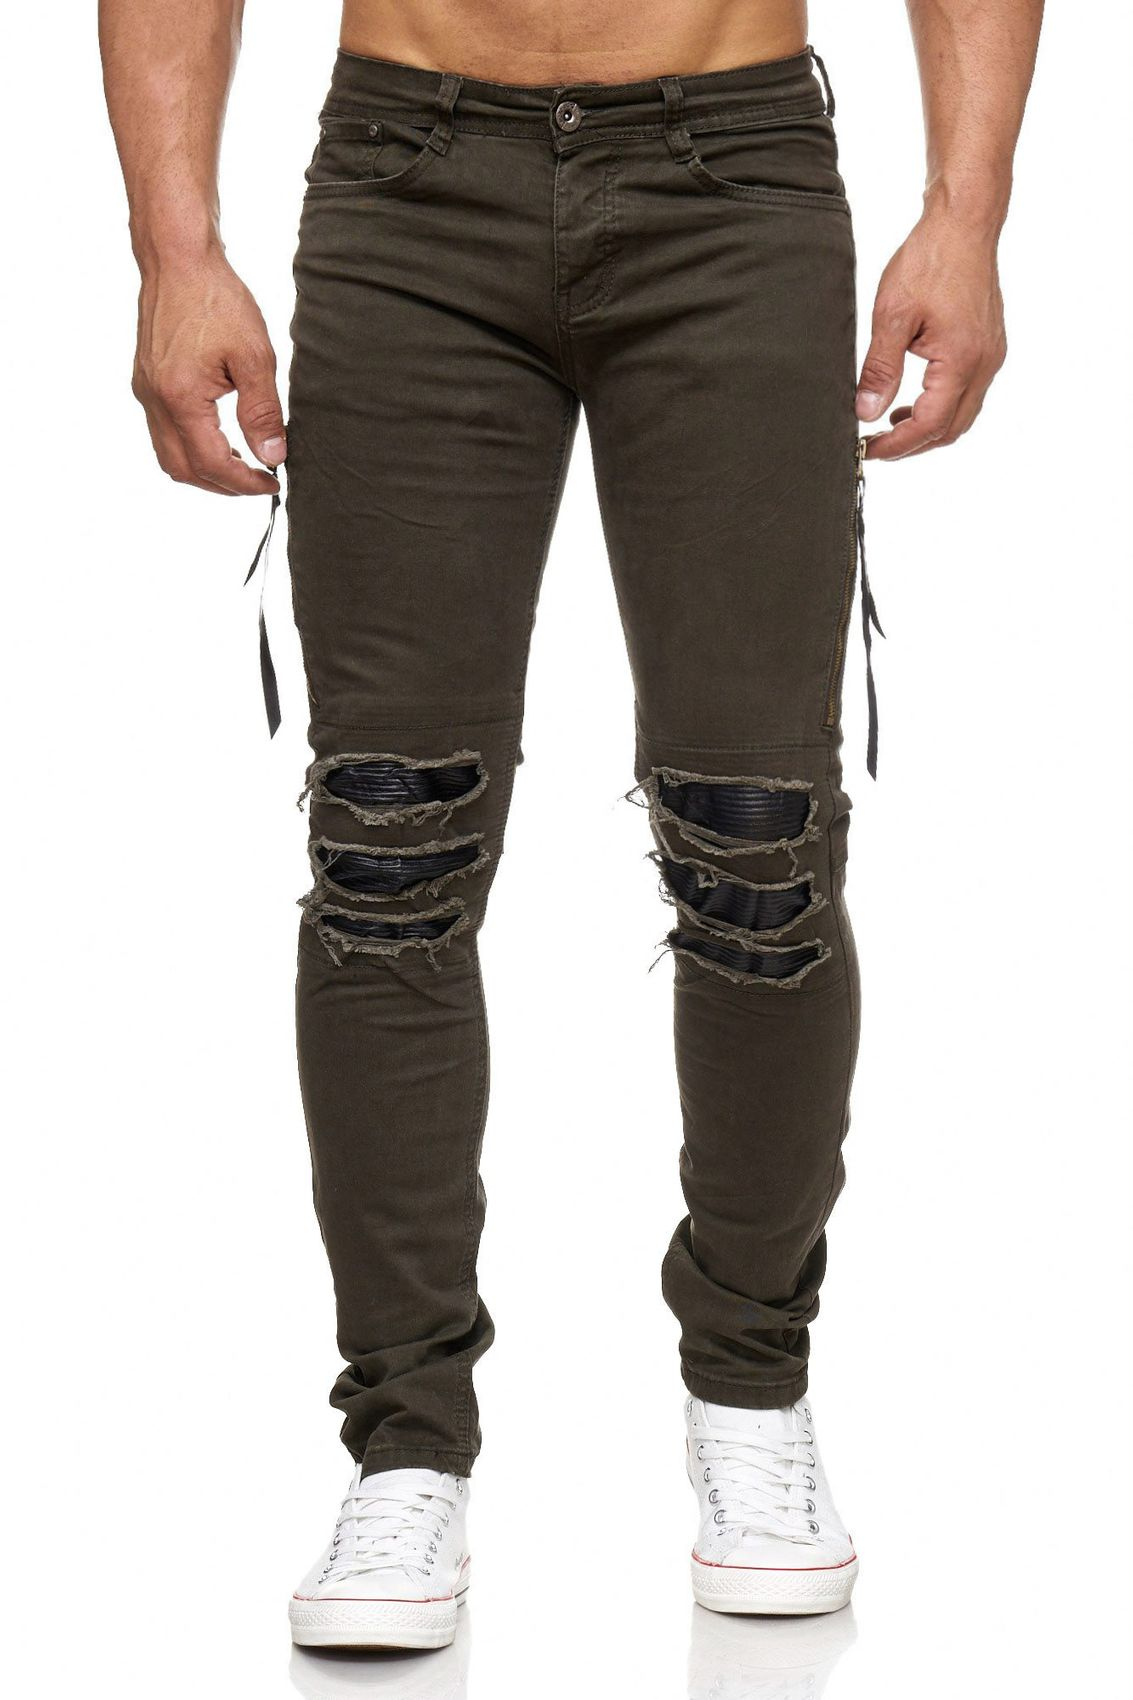 herren jeans hose ripped destroyed l cher risse washed biker zipper knie skinny ebay. Black Bedroom Furniture Sets. Home Design Ideas